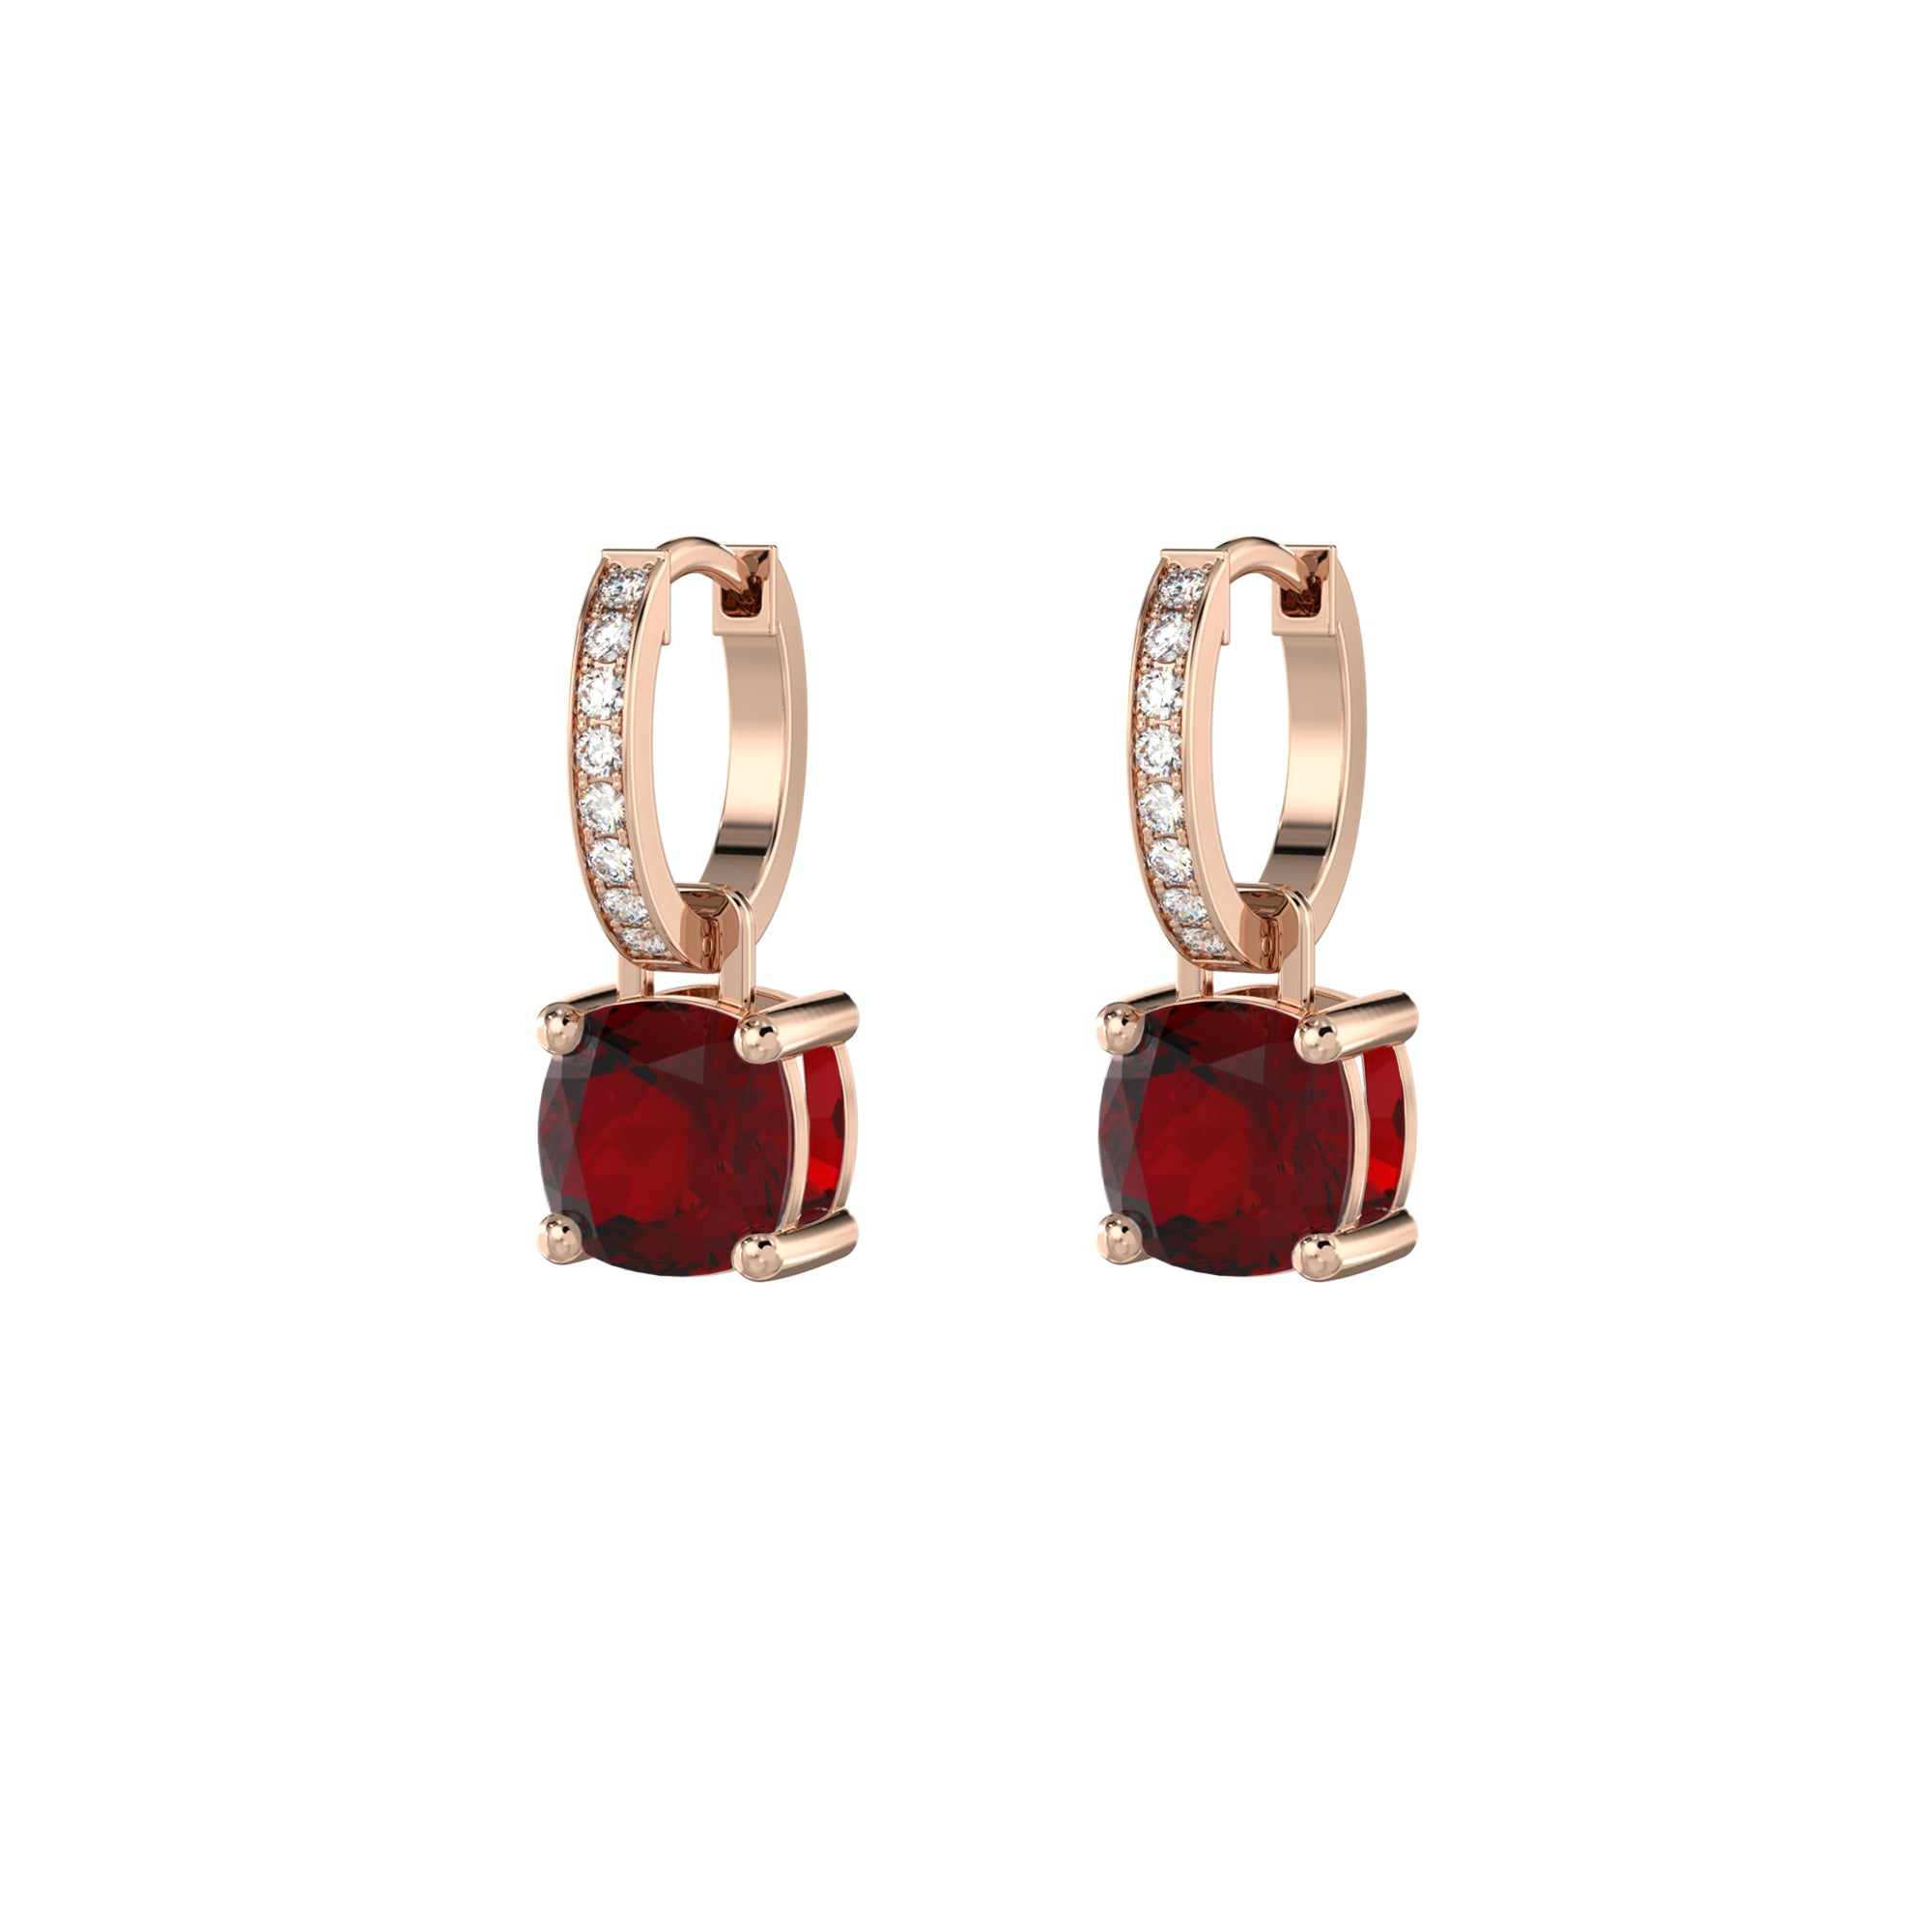 925 Silver Luxe Series Earrings Charms - Wylie (Garnet) - Rose Gold Plated